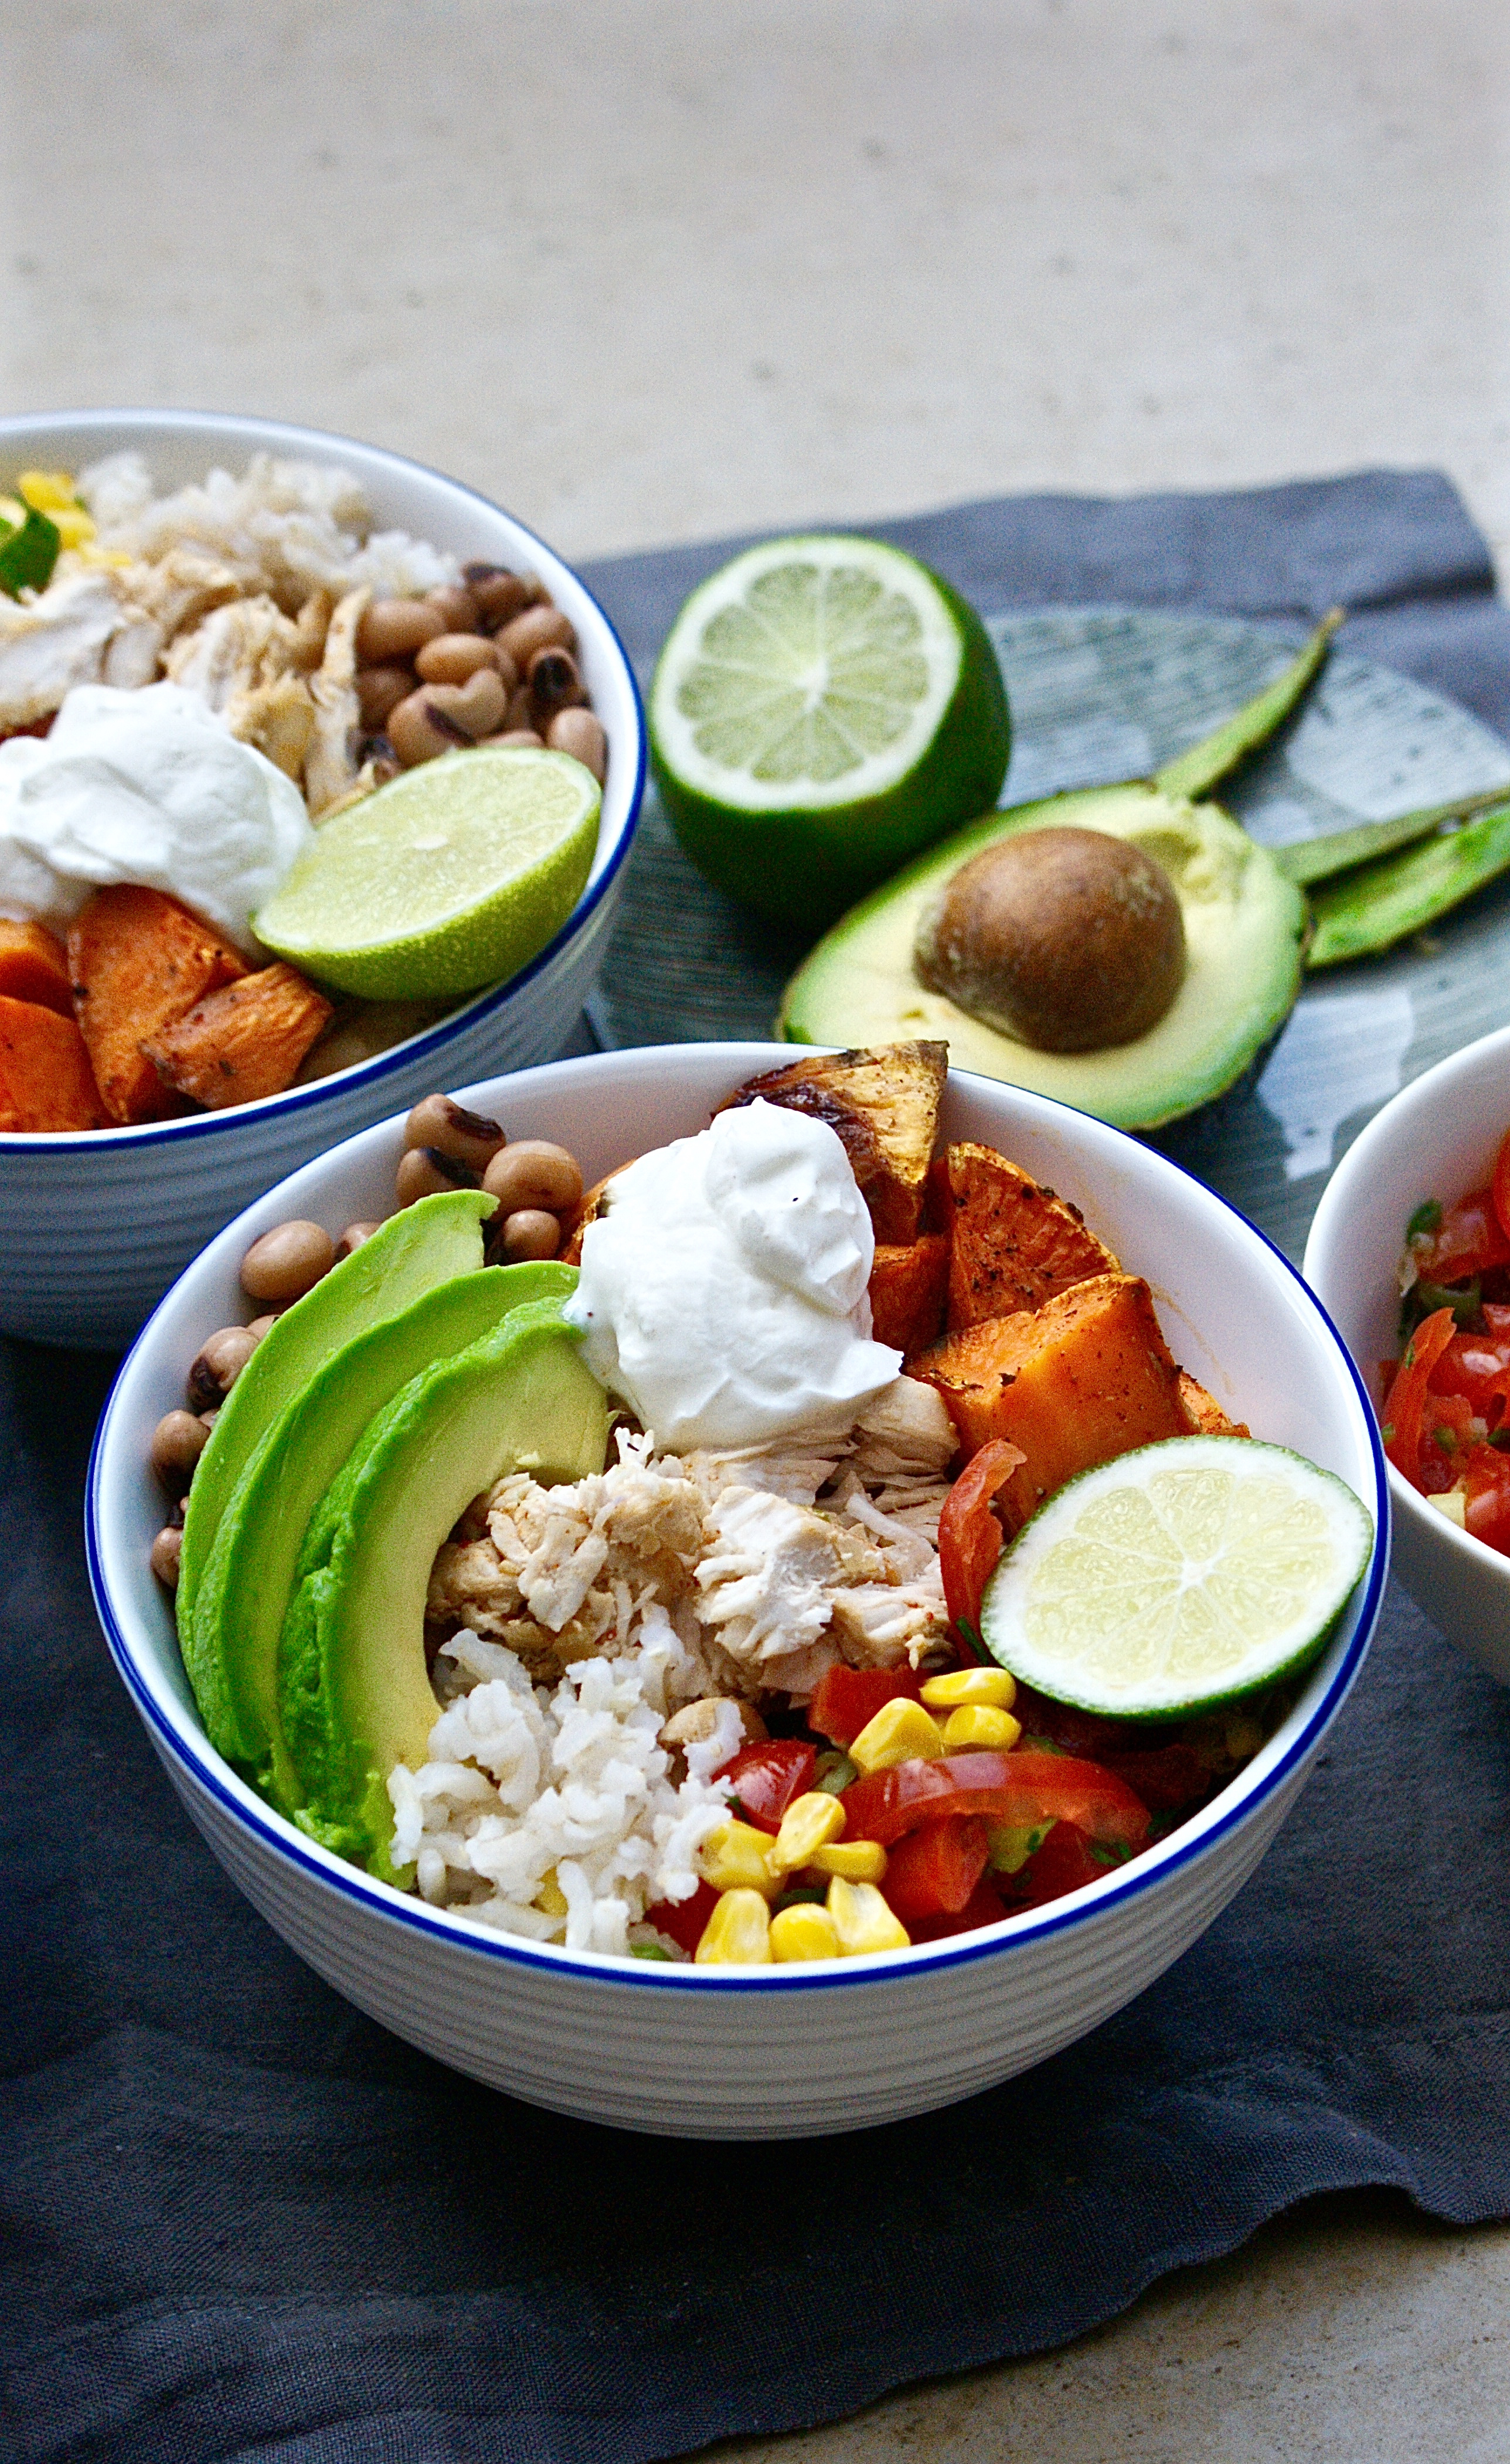 Top With The Warm Chicken Sweet Potatoes Beans And Sweetcorn Bring The Salsa The Yoghurt Sliced Avocado And More Lime To The Table So That People Can